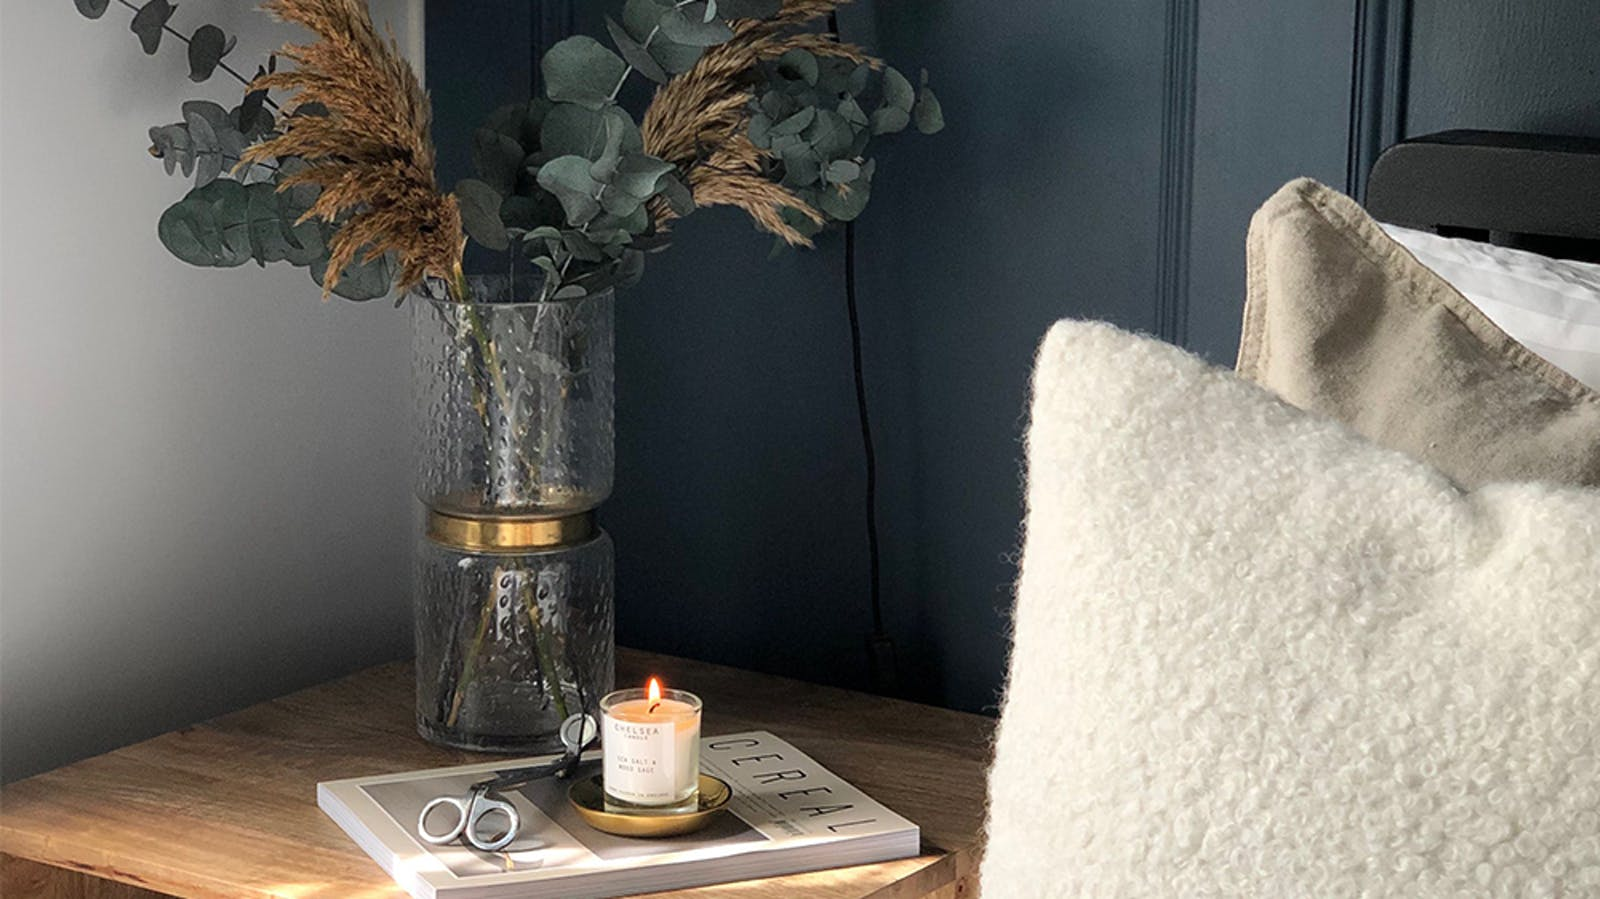 Close up of bed side table with a lit candle, a magazine and some dried eucalyptus flowers